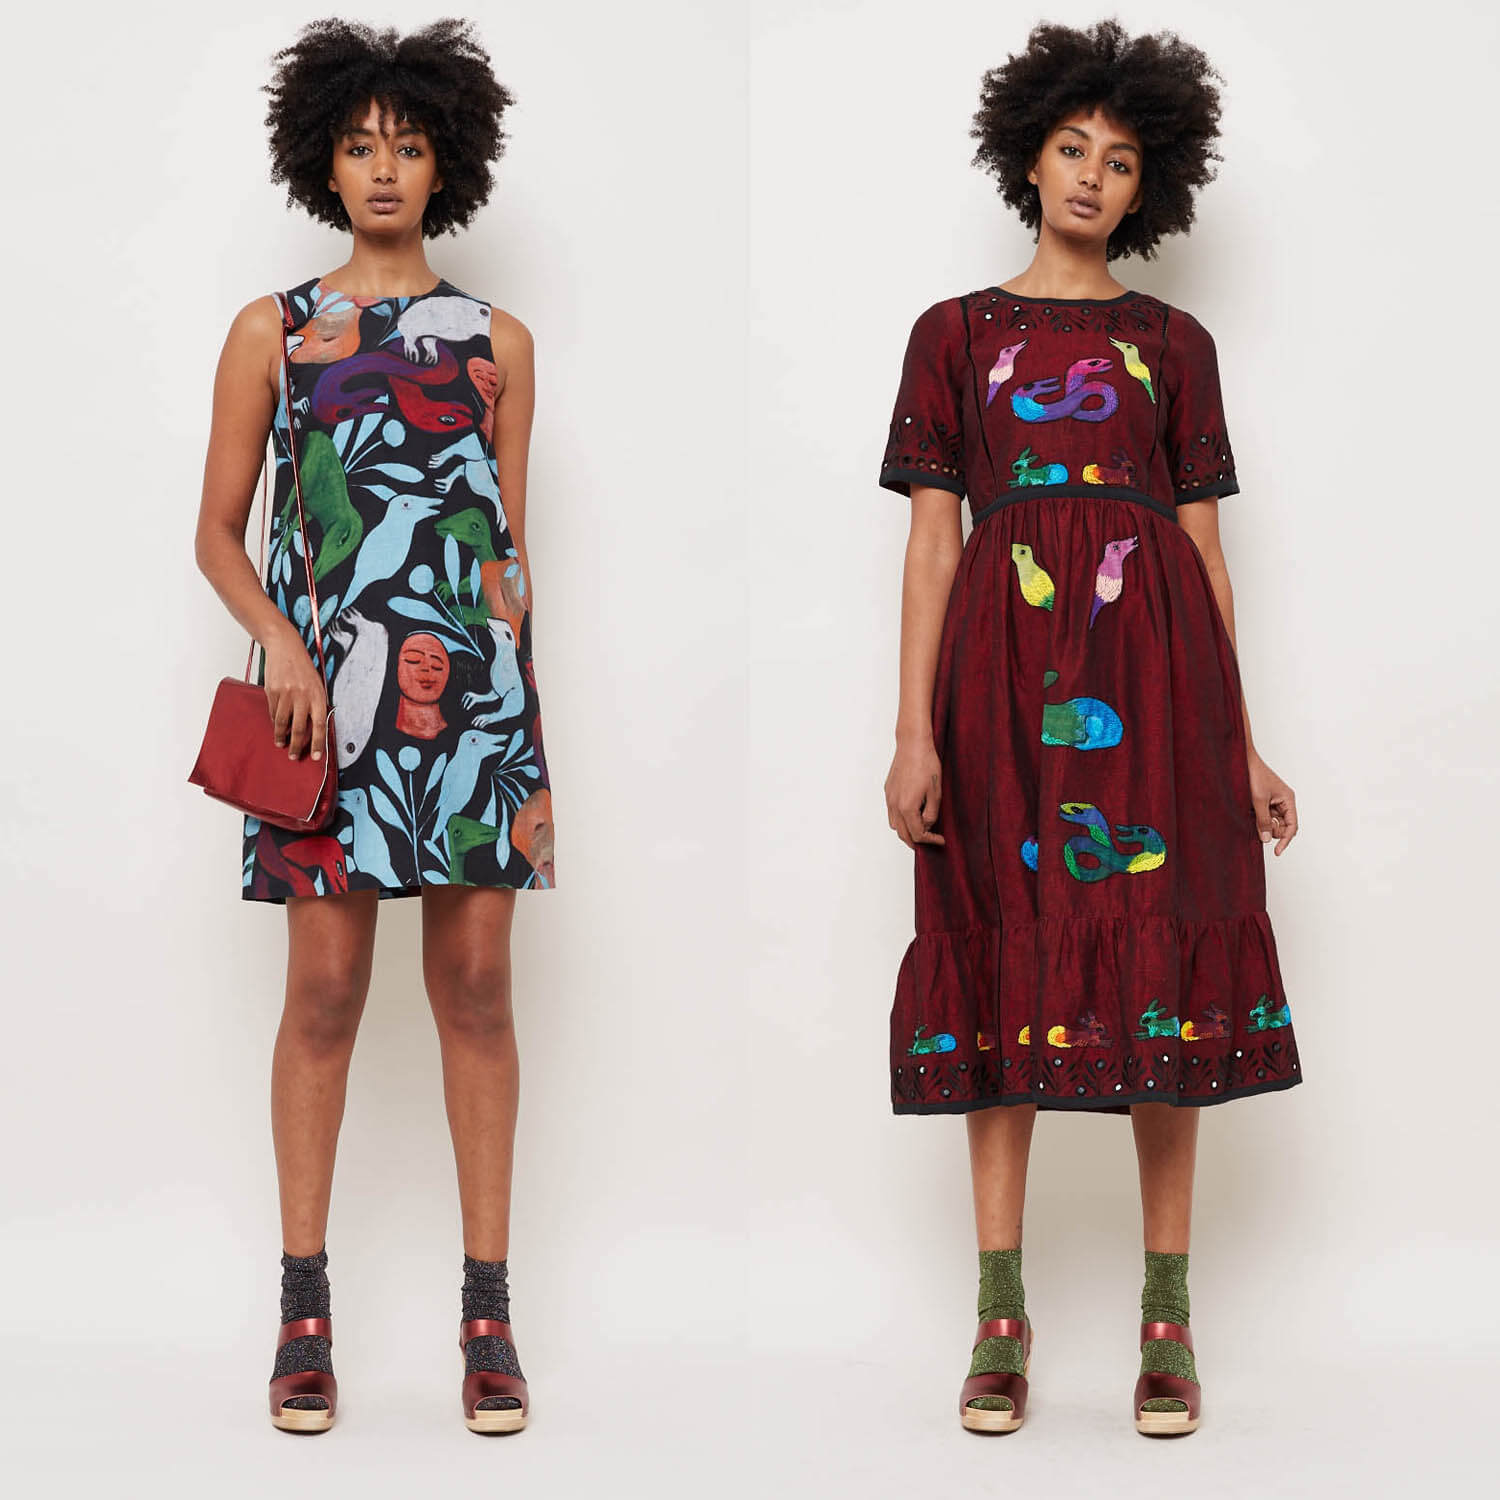 dresses painted by Mirka Mora and produced by Gorman